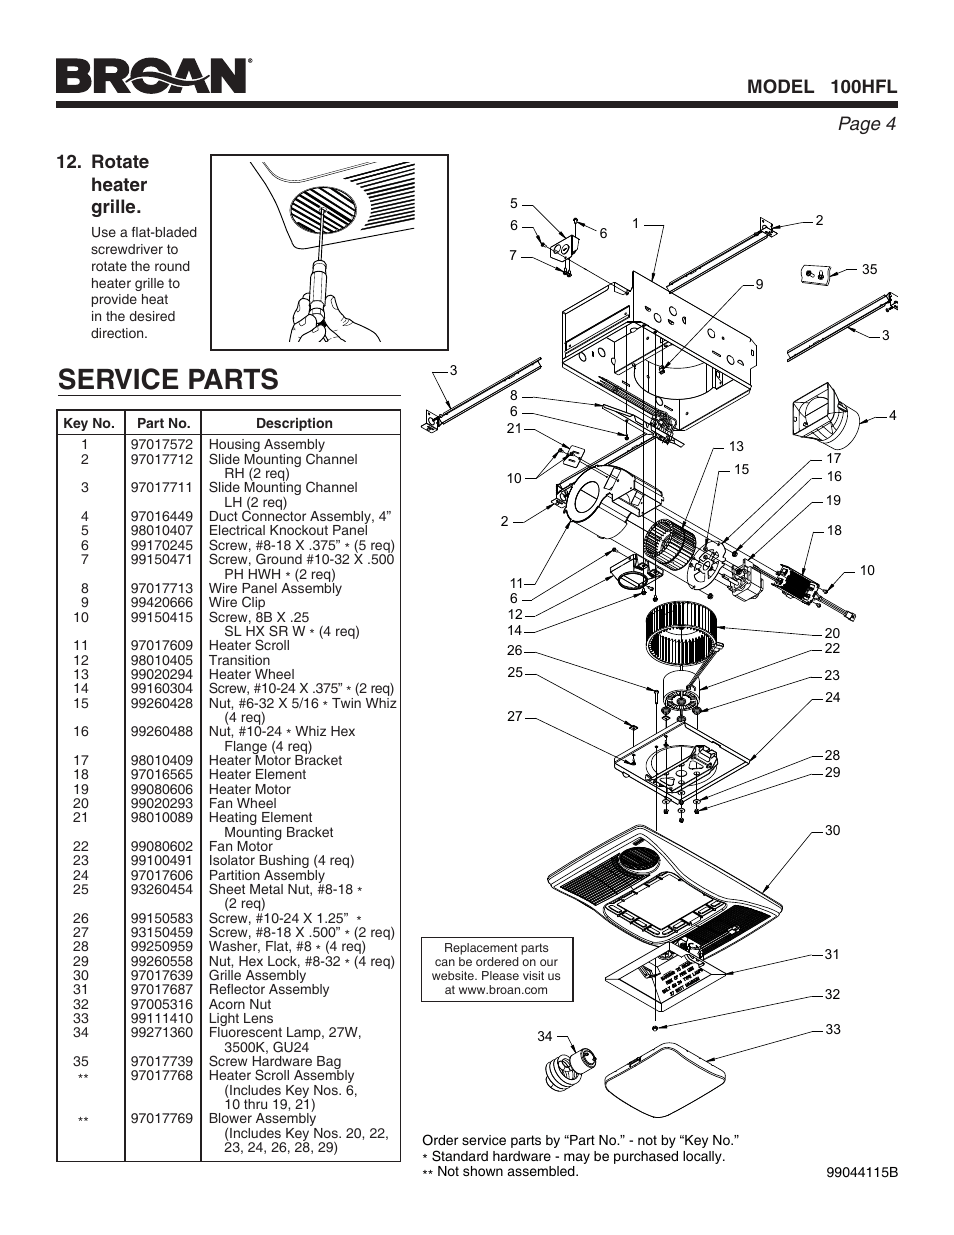 User's manual of Generic Electric Fan Conversion Wiring